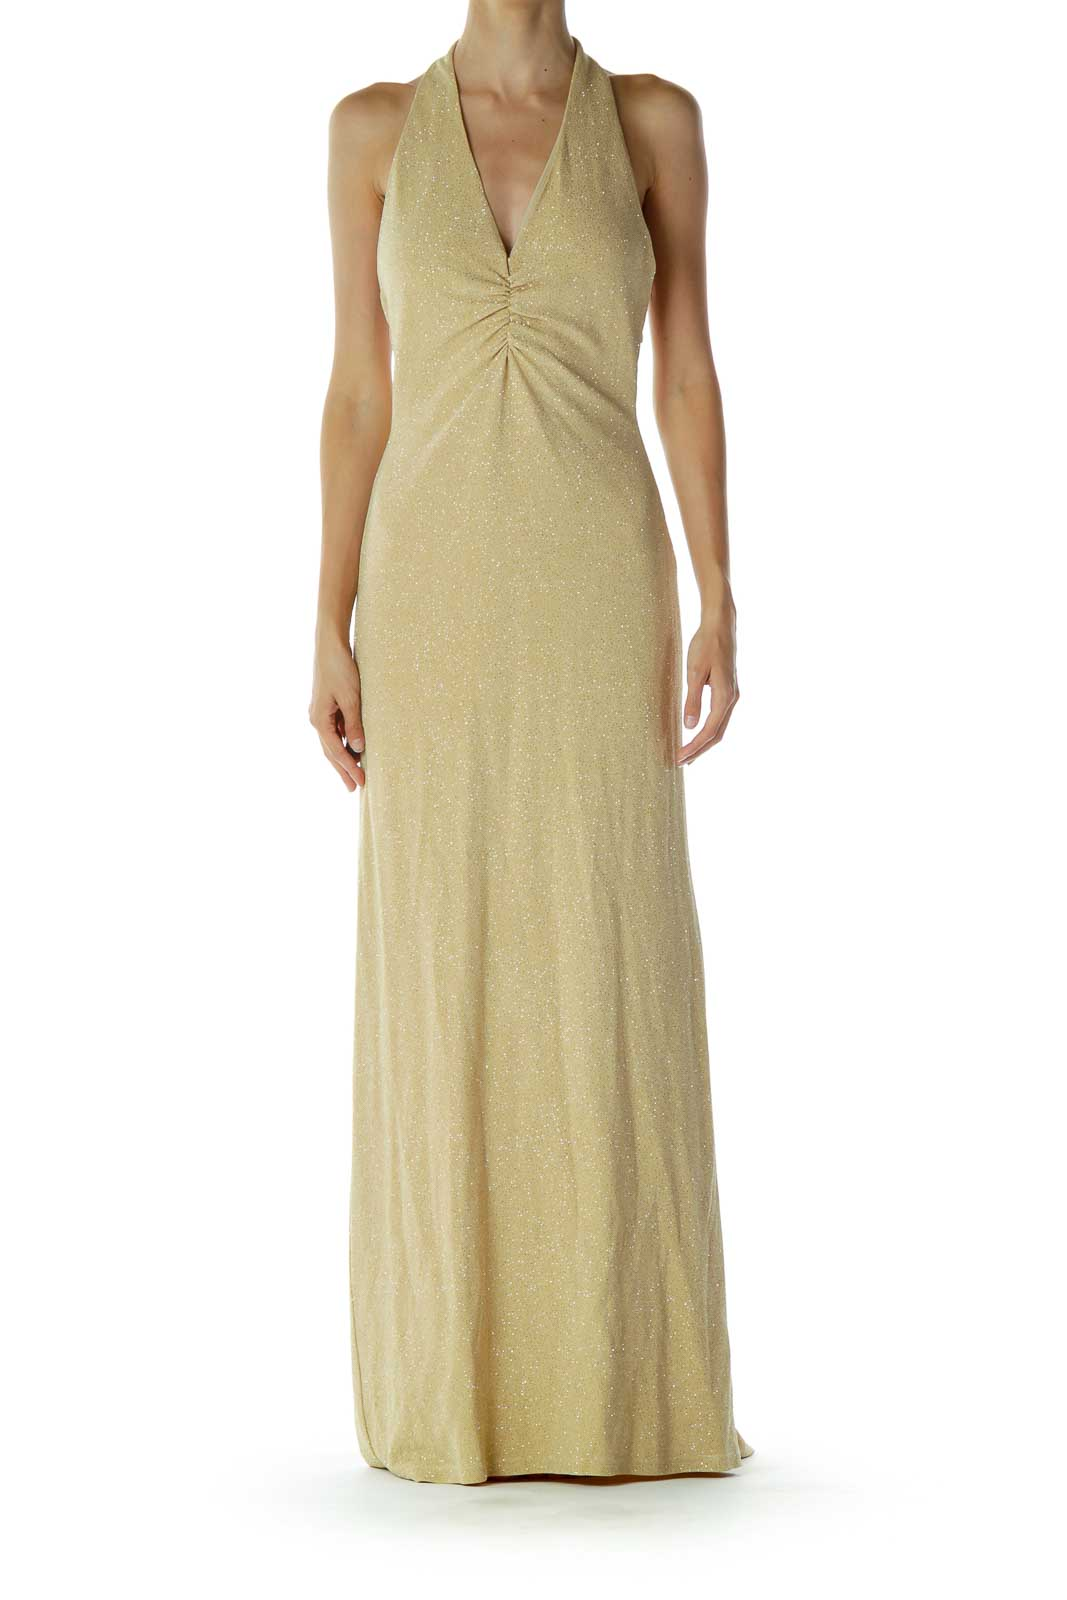 Gold Sparkly Evening Dress